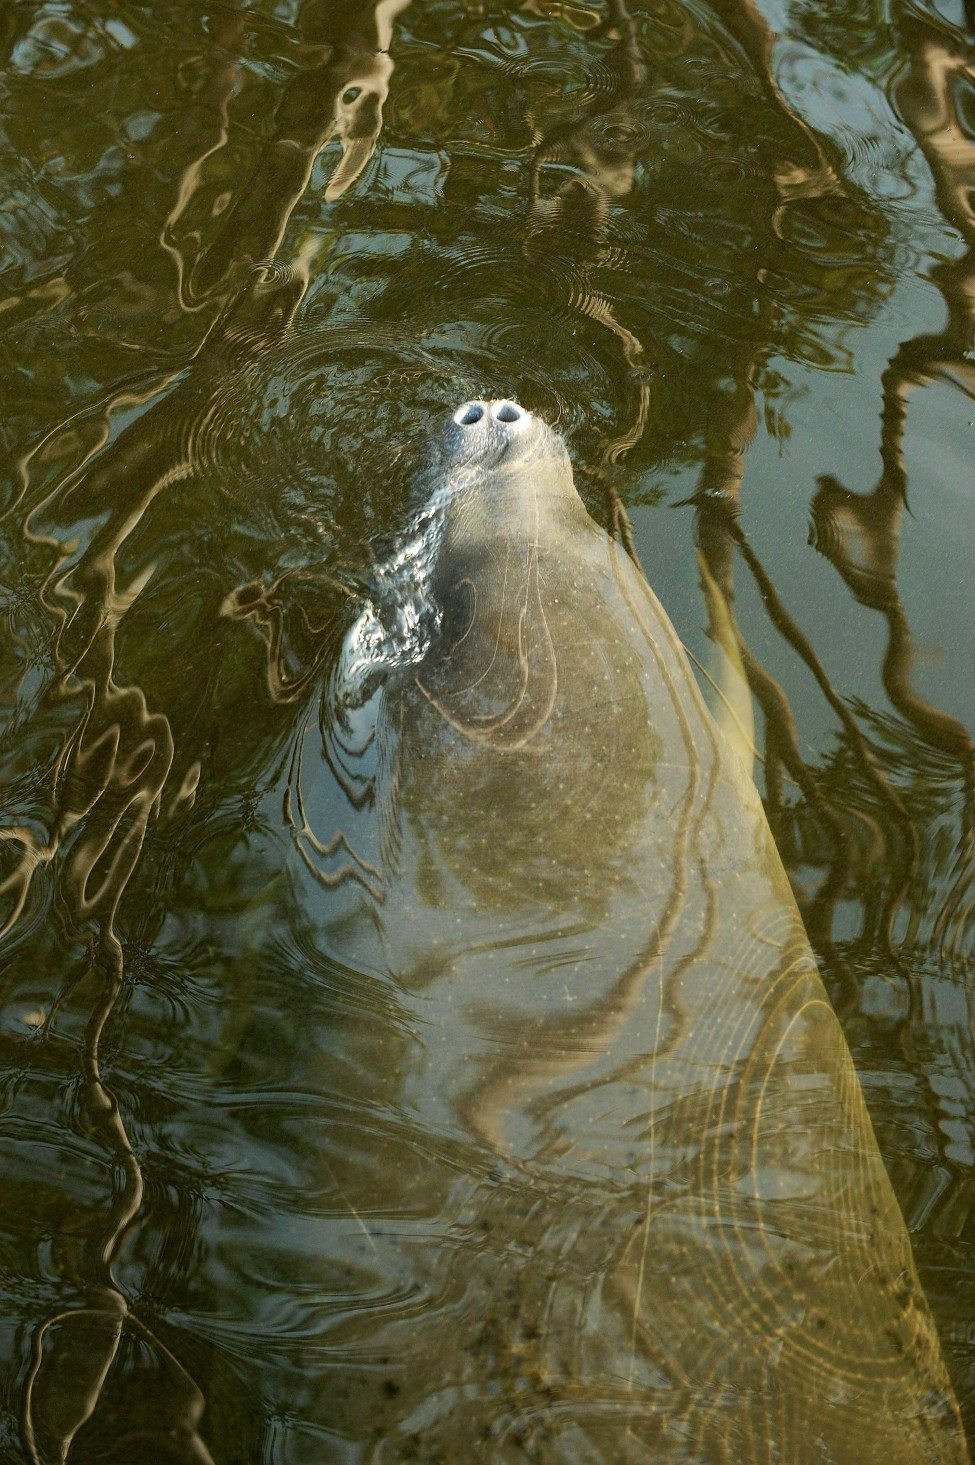 A manatee rises to take a breath in N'dogo Lagoon. Although there is a lot of legislation to protect the African manatee, including its listing in CITES Appendix 1, there is little enforcement to deter poachers.<br /> Photo by Thomas Peschak